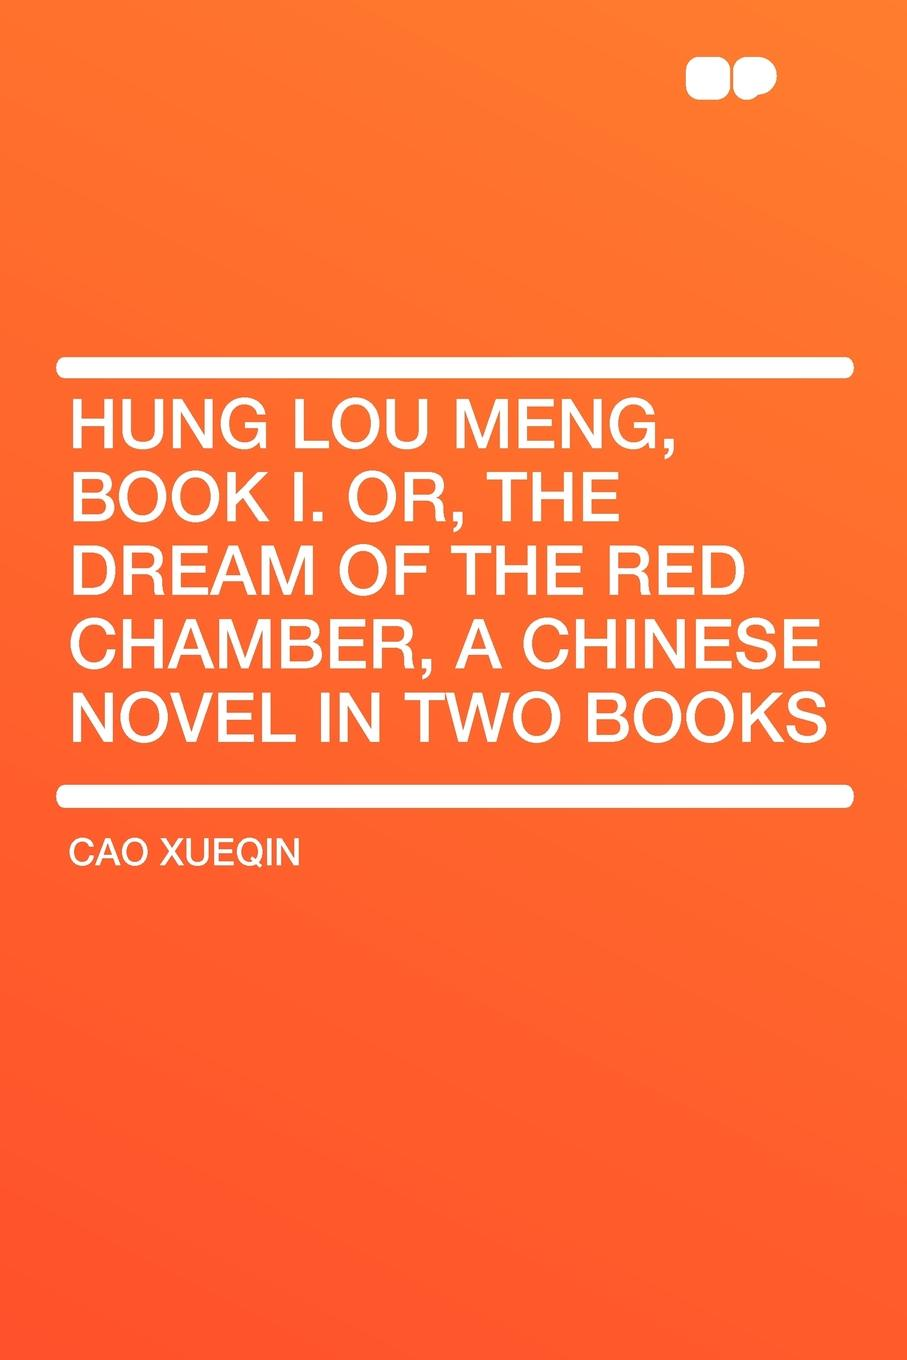 лучшая цена Cao Xueqin Hung Lou Meng, Book I. Or, the Dream of the Red Chamber, a Chinese Novel in Two Books